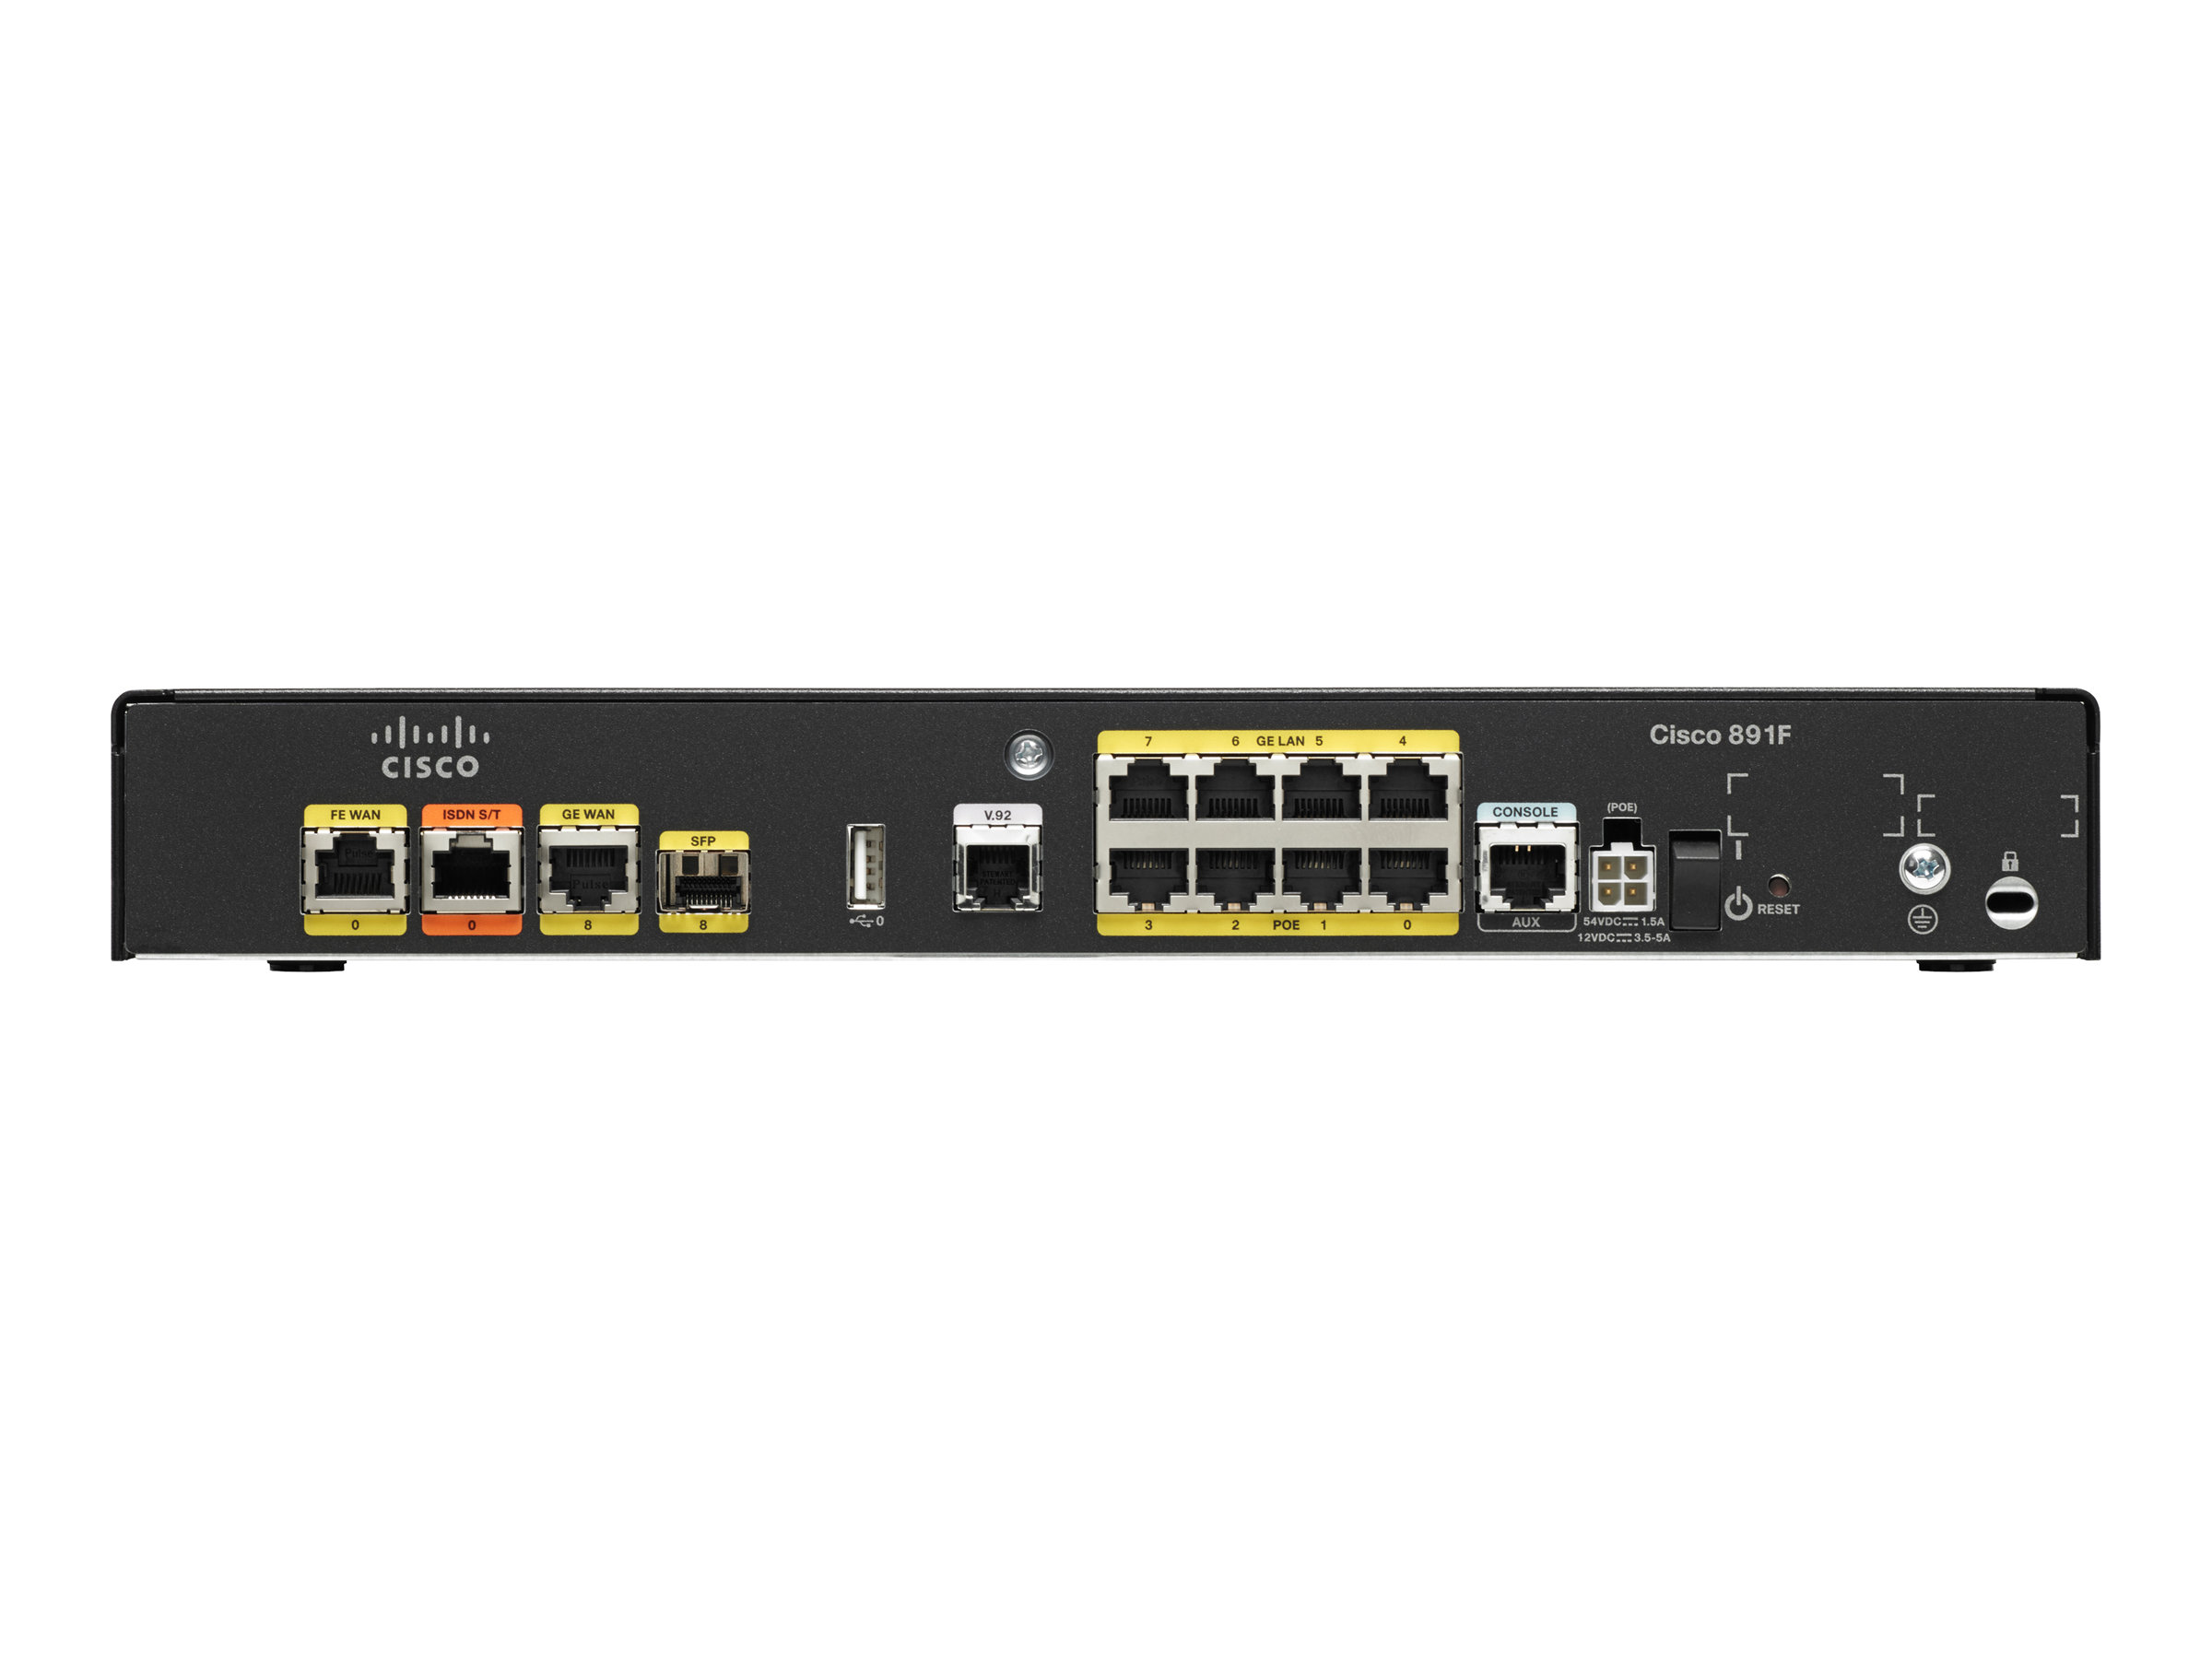 Cisco 891F - router - ISDN/Mdm